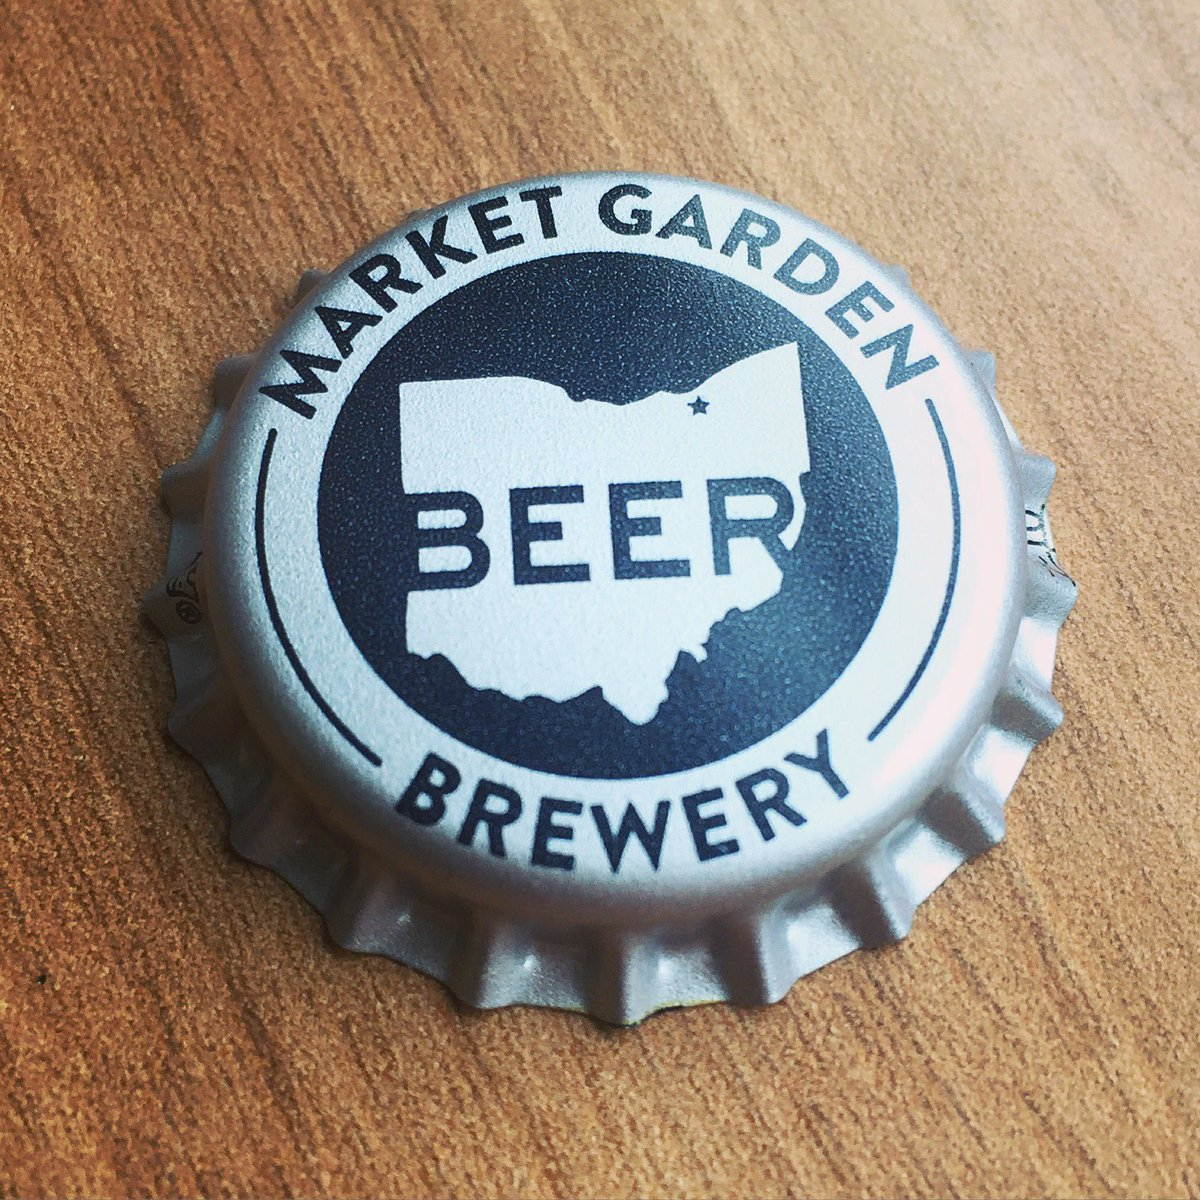 We may be a little biased, but these are some pretty good looking bottle caps! https://t.co/FKElDANLSz